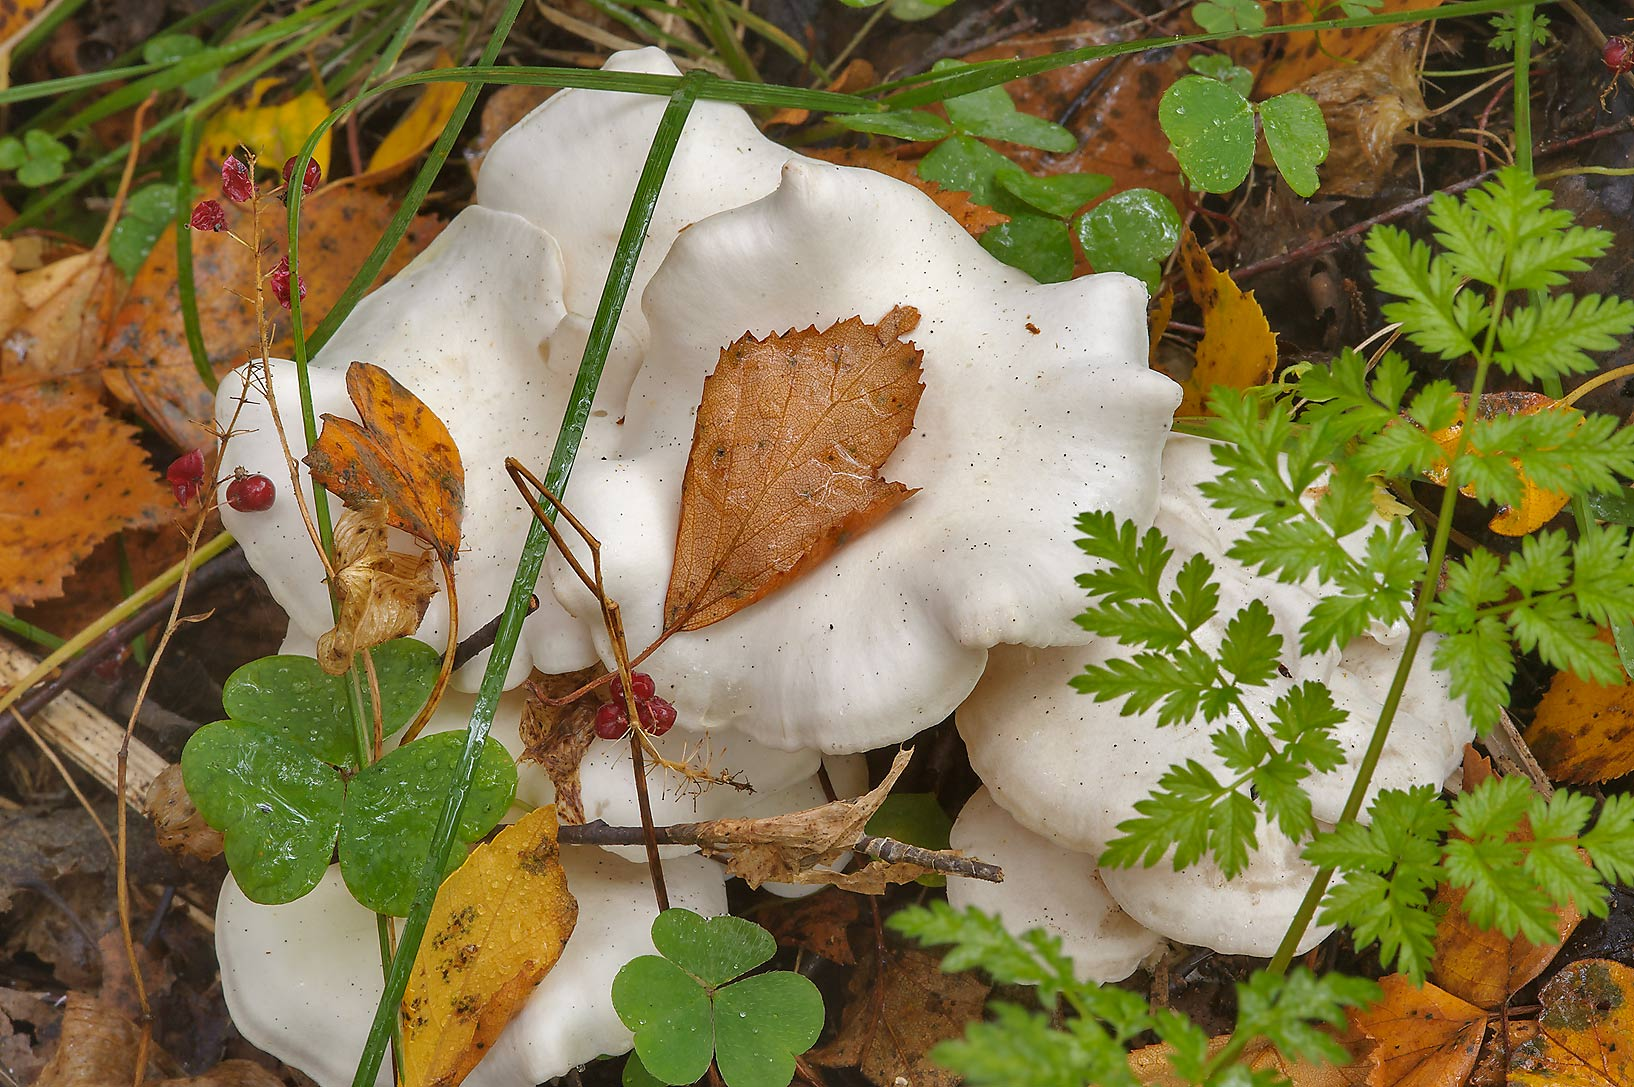 White domecap mushrooms (Leucocybe connata...miles north from St.Petersburg. Russia